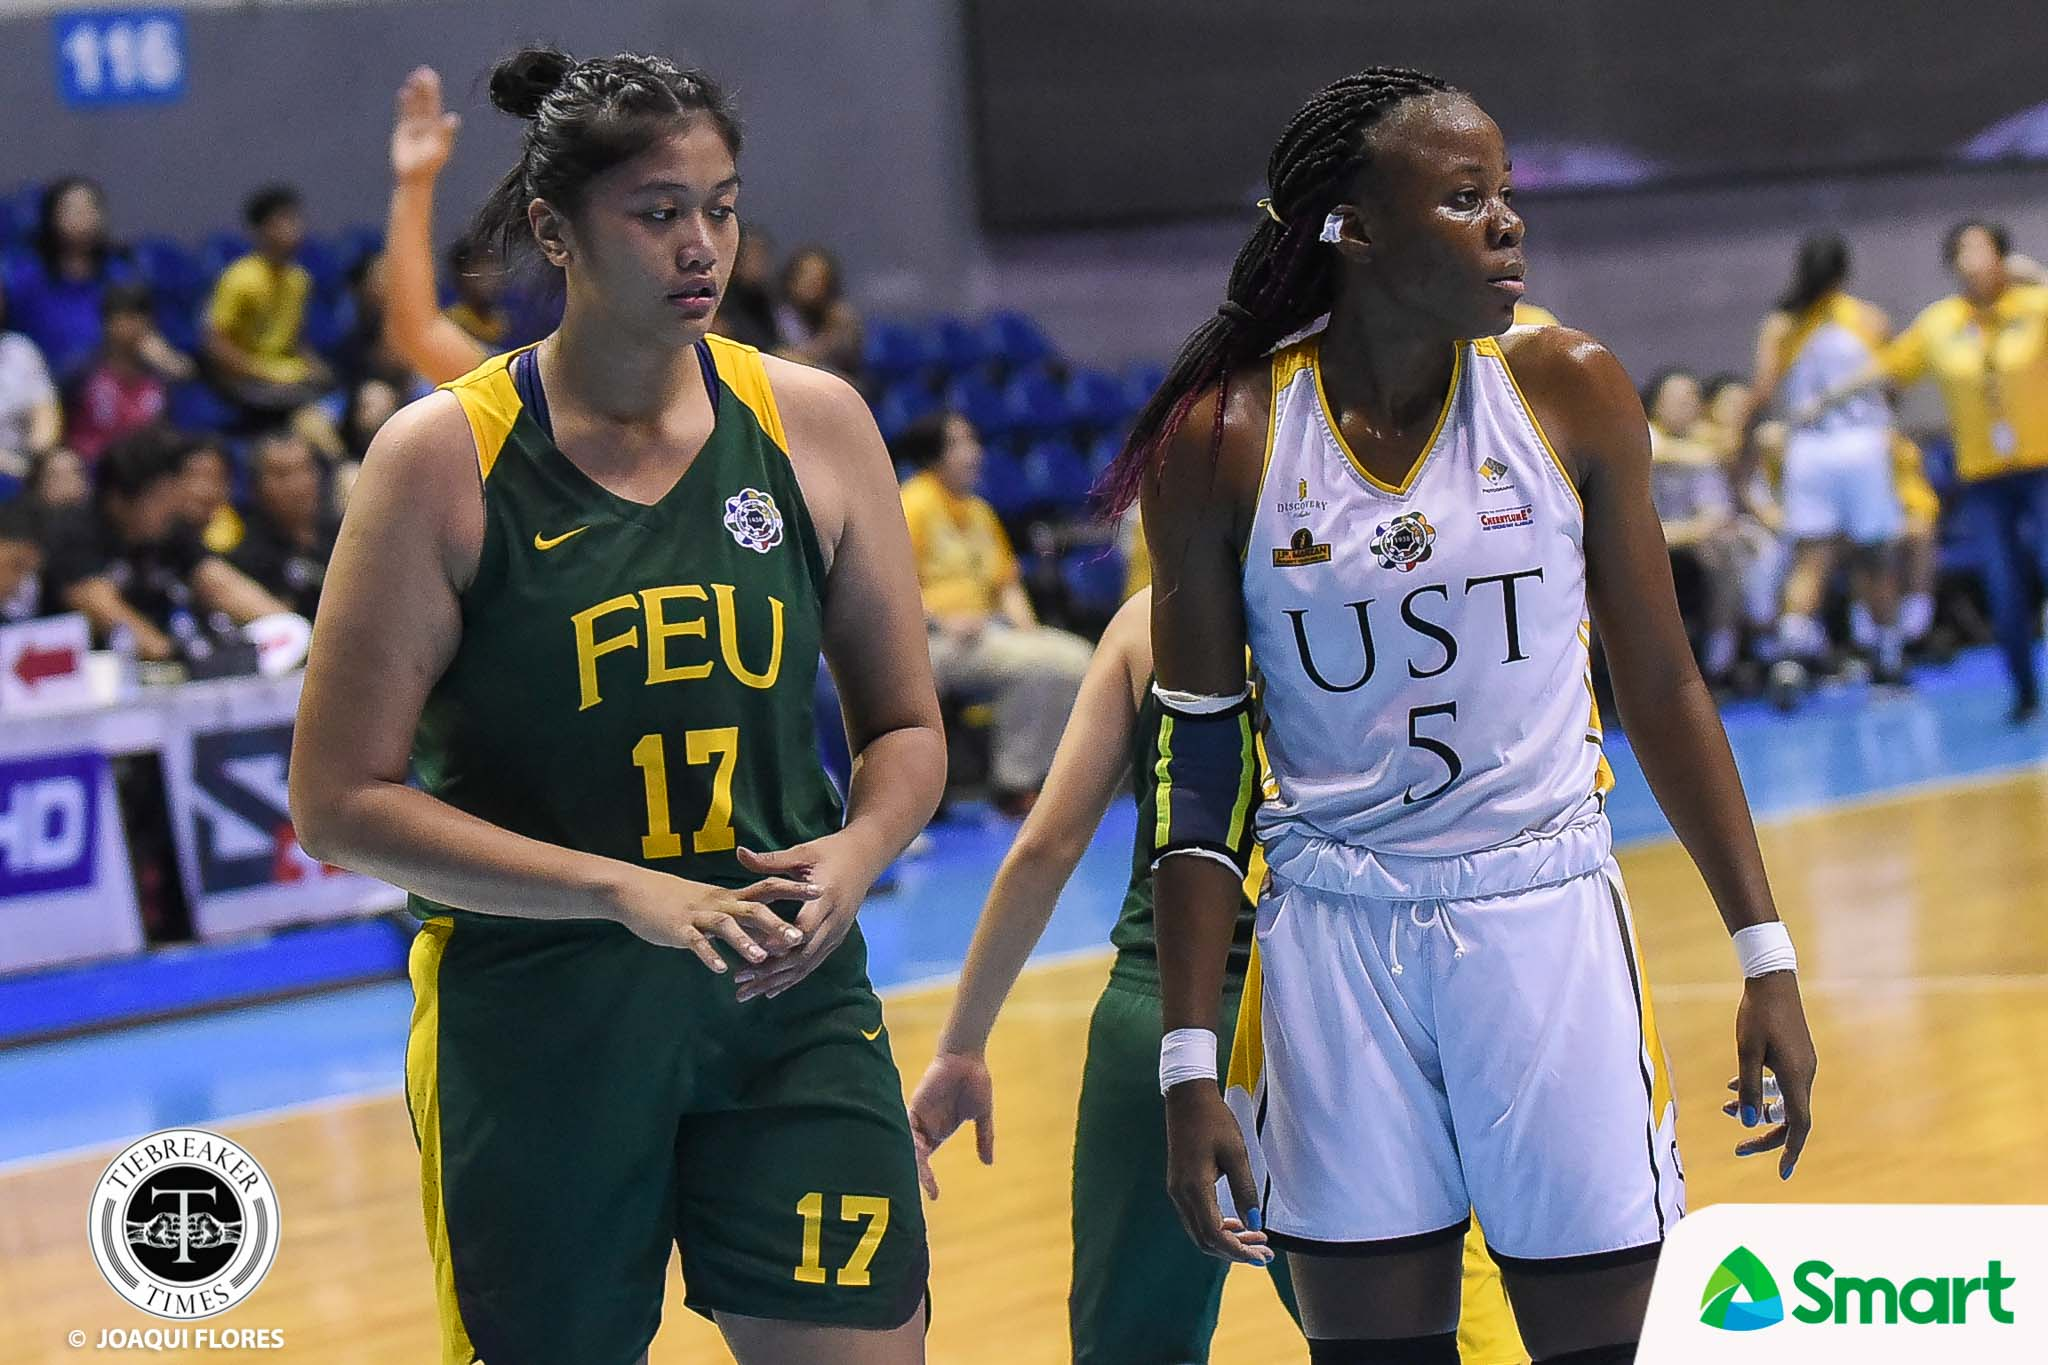 Tiebreaker Times Grace Irebu vows payback for UST come do-or-die Game Two Basketball News UAAP UST  UST Women's Basketball UAAP Season 82 Women's Basketball UAAP Season 82 Grace Irebu